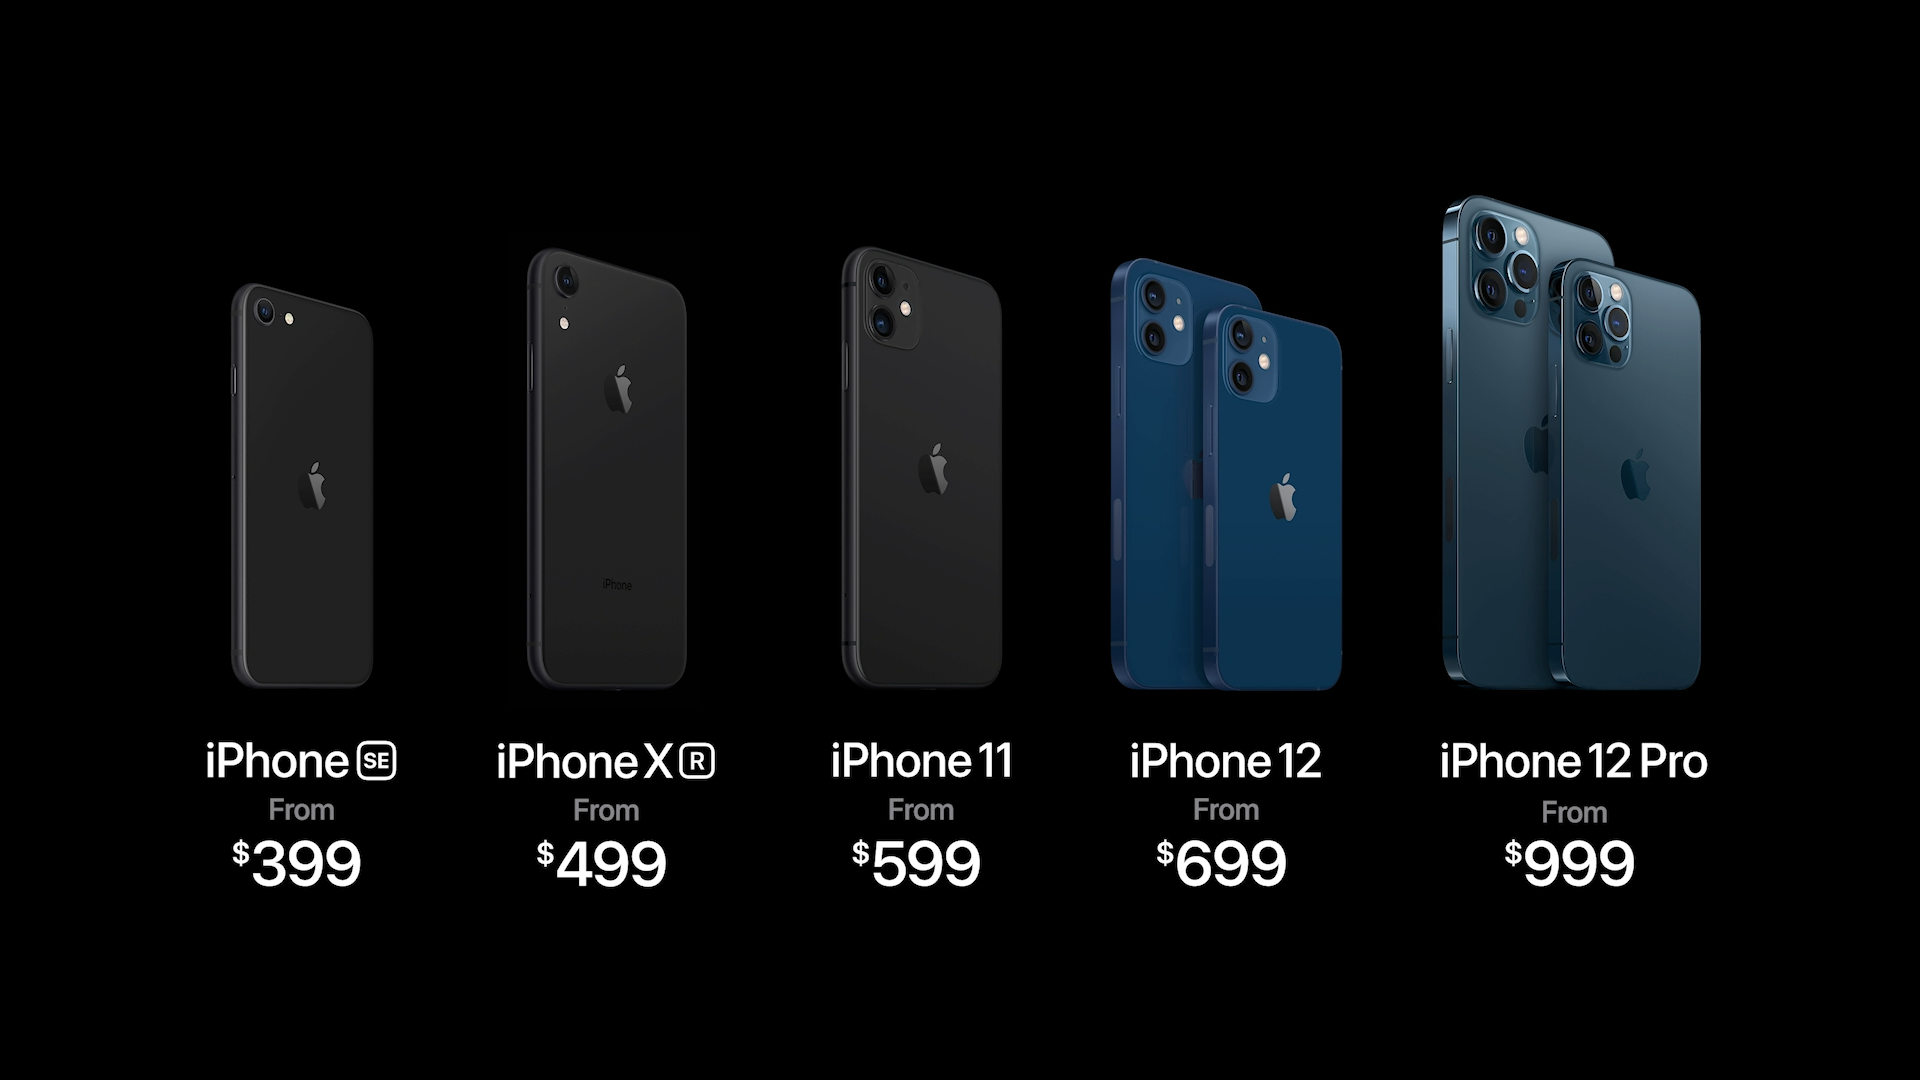 33-apple-iphone-12-pro-5g-2020.png